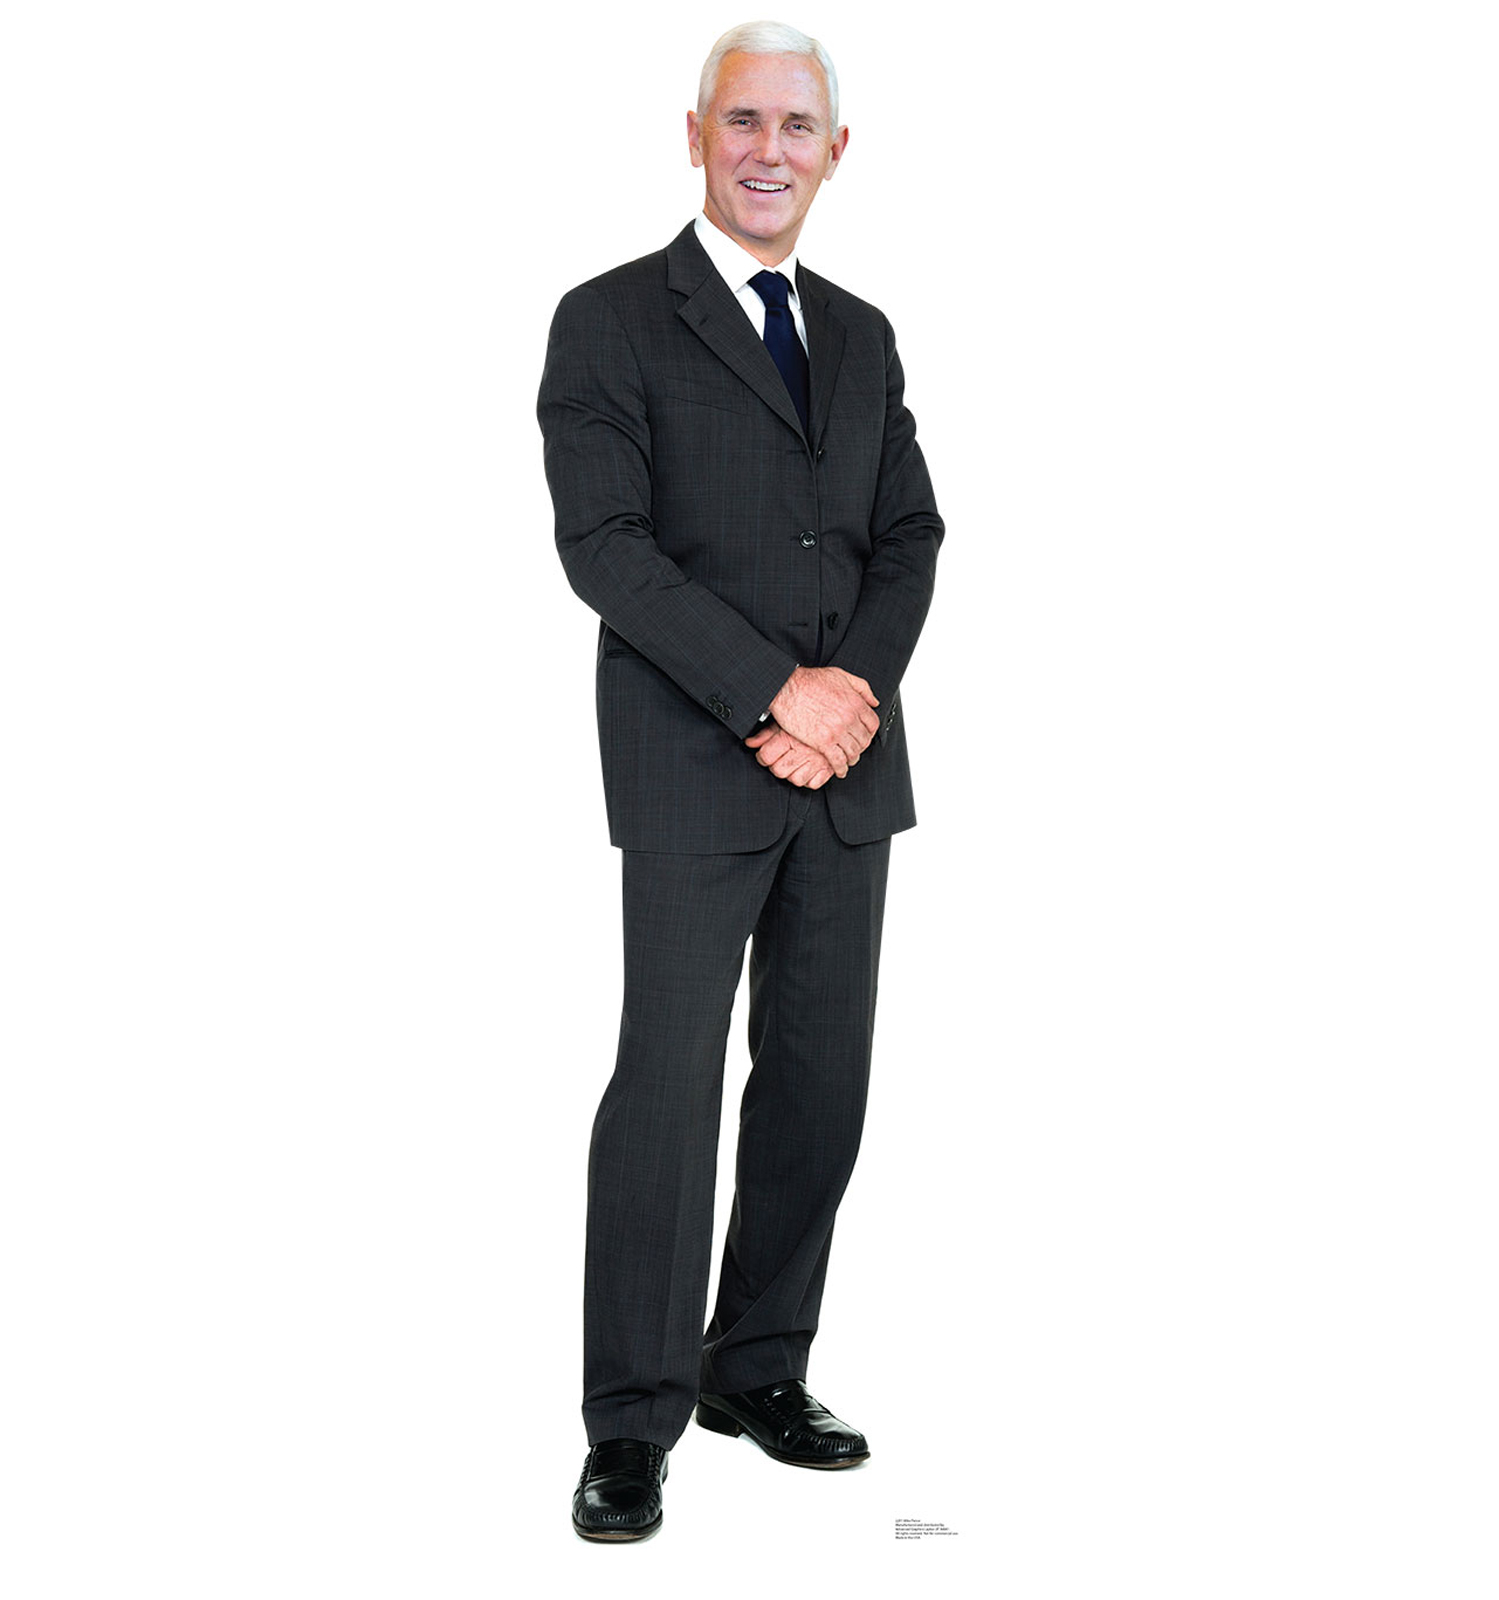 Aahs Engravings Vice President Mike Pence Life Size Stand Up